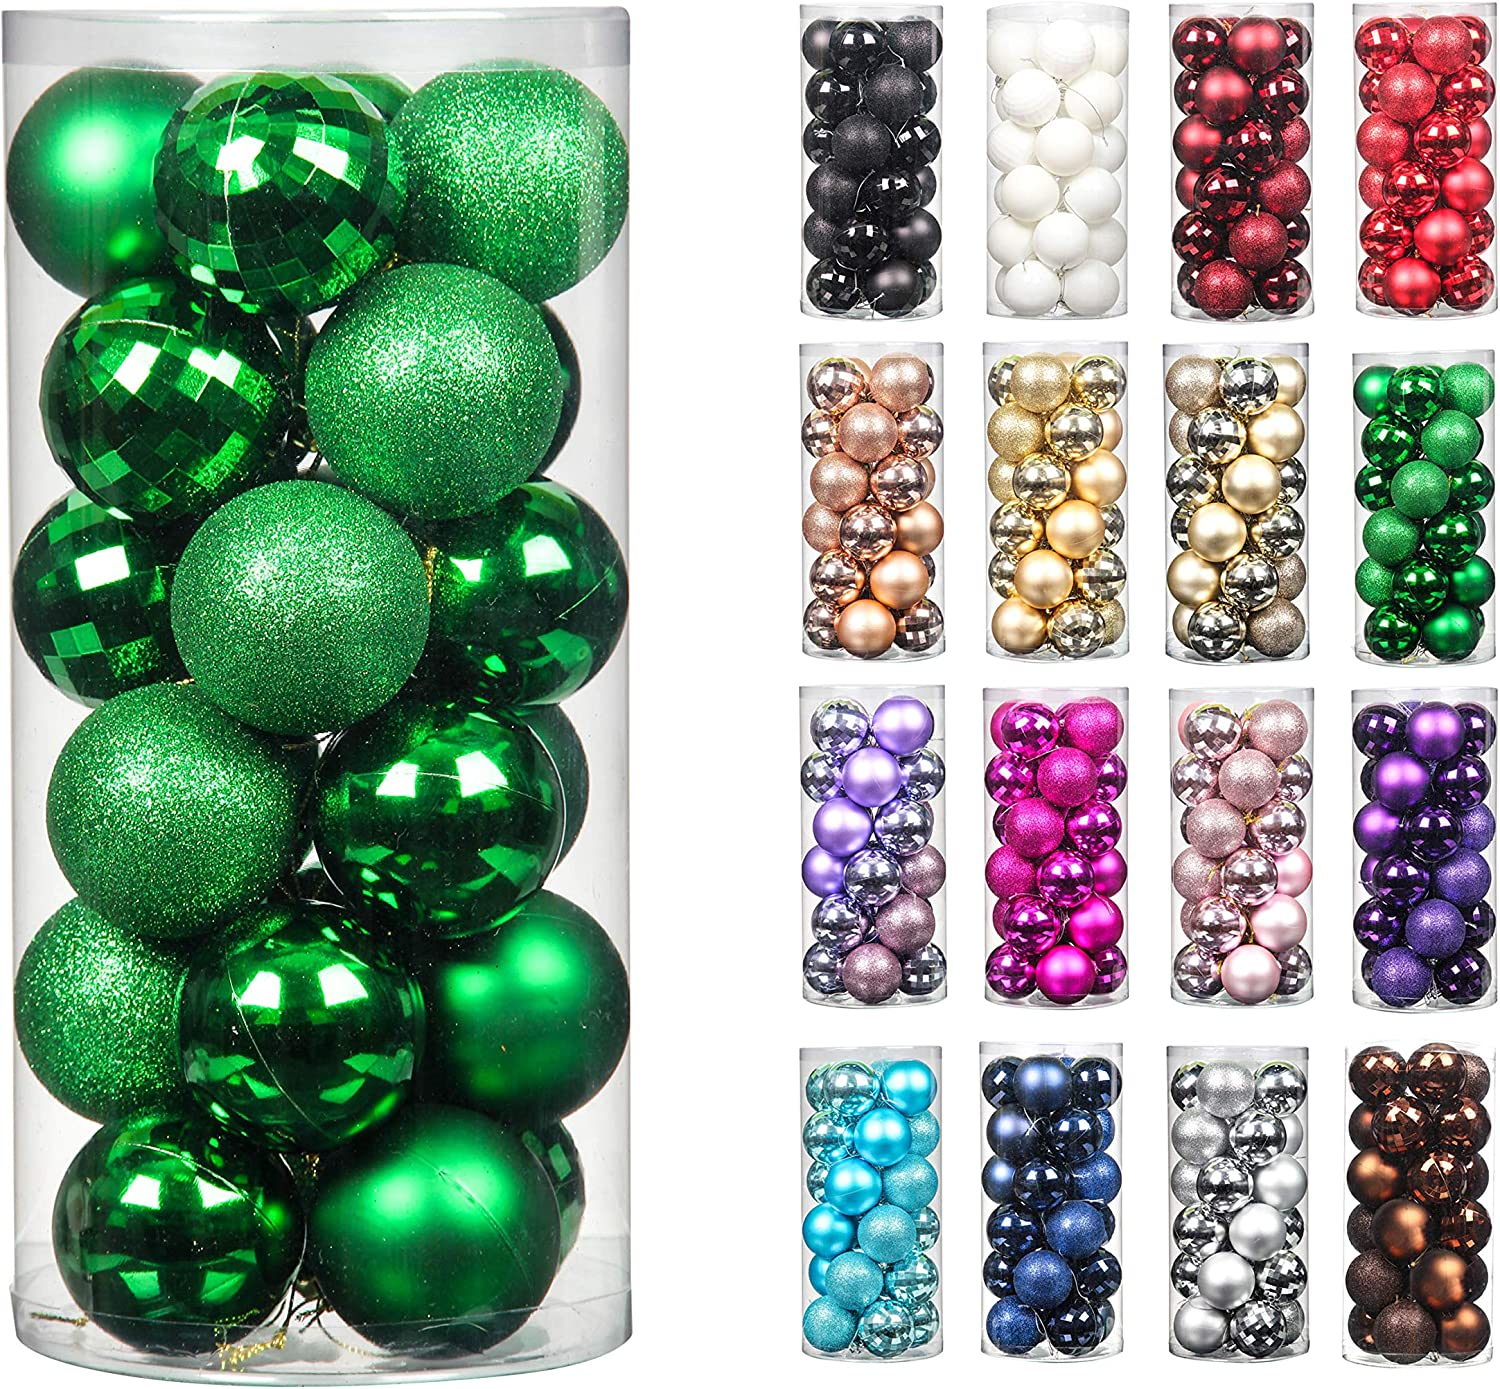 24pcs 2.36in Christmas Decoration Balls Shatterproof Color Set Ornaments Balls for Festival Wedding Home Party Decors Xmas Tree Hanging ( Green)